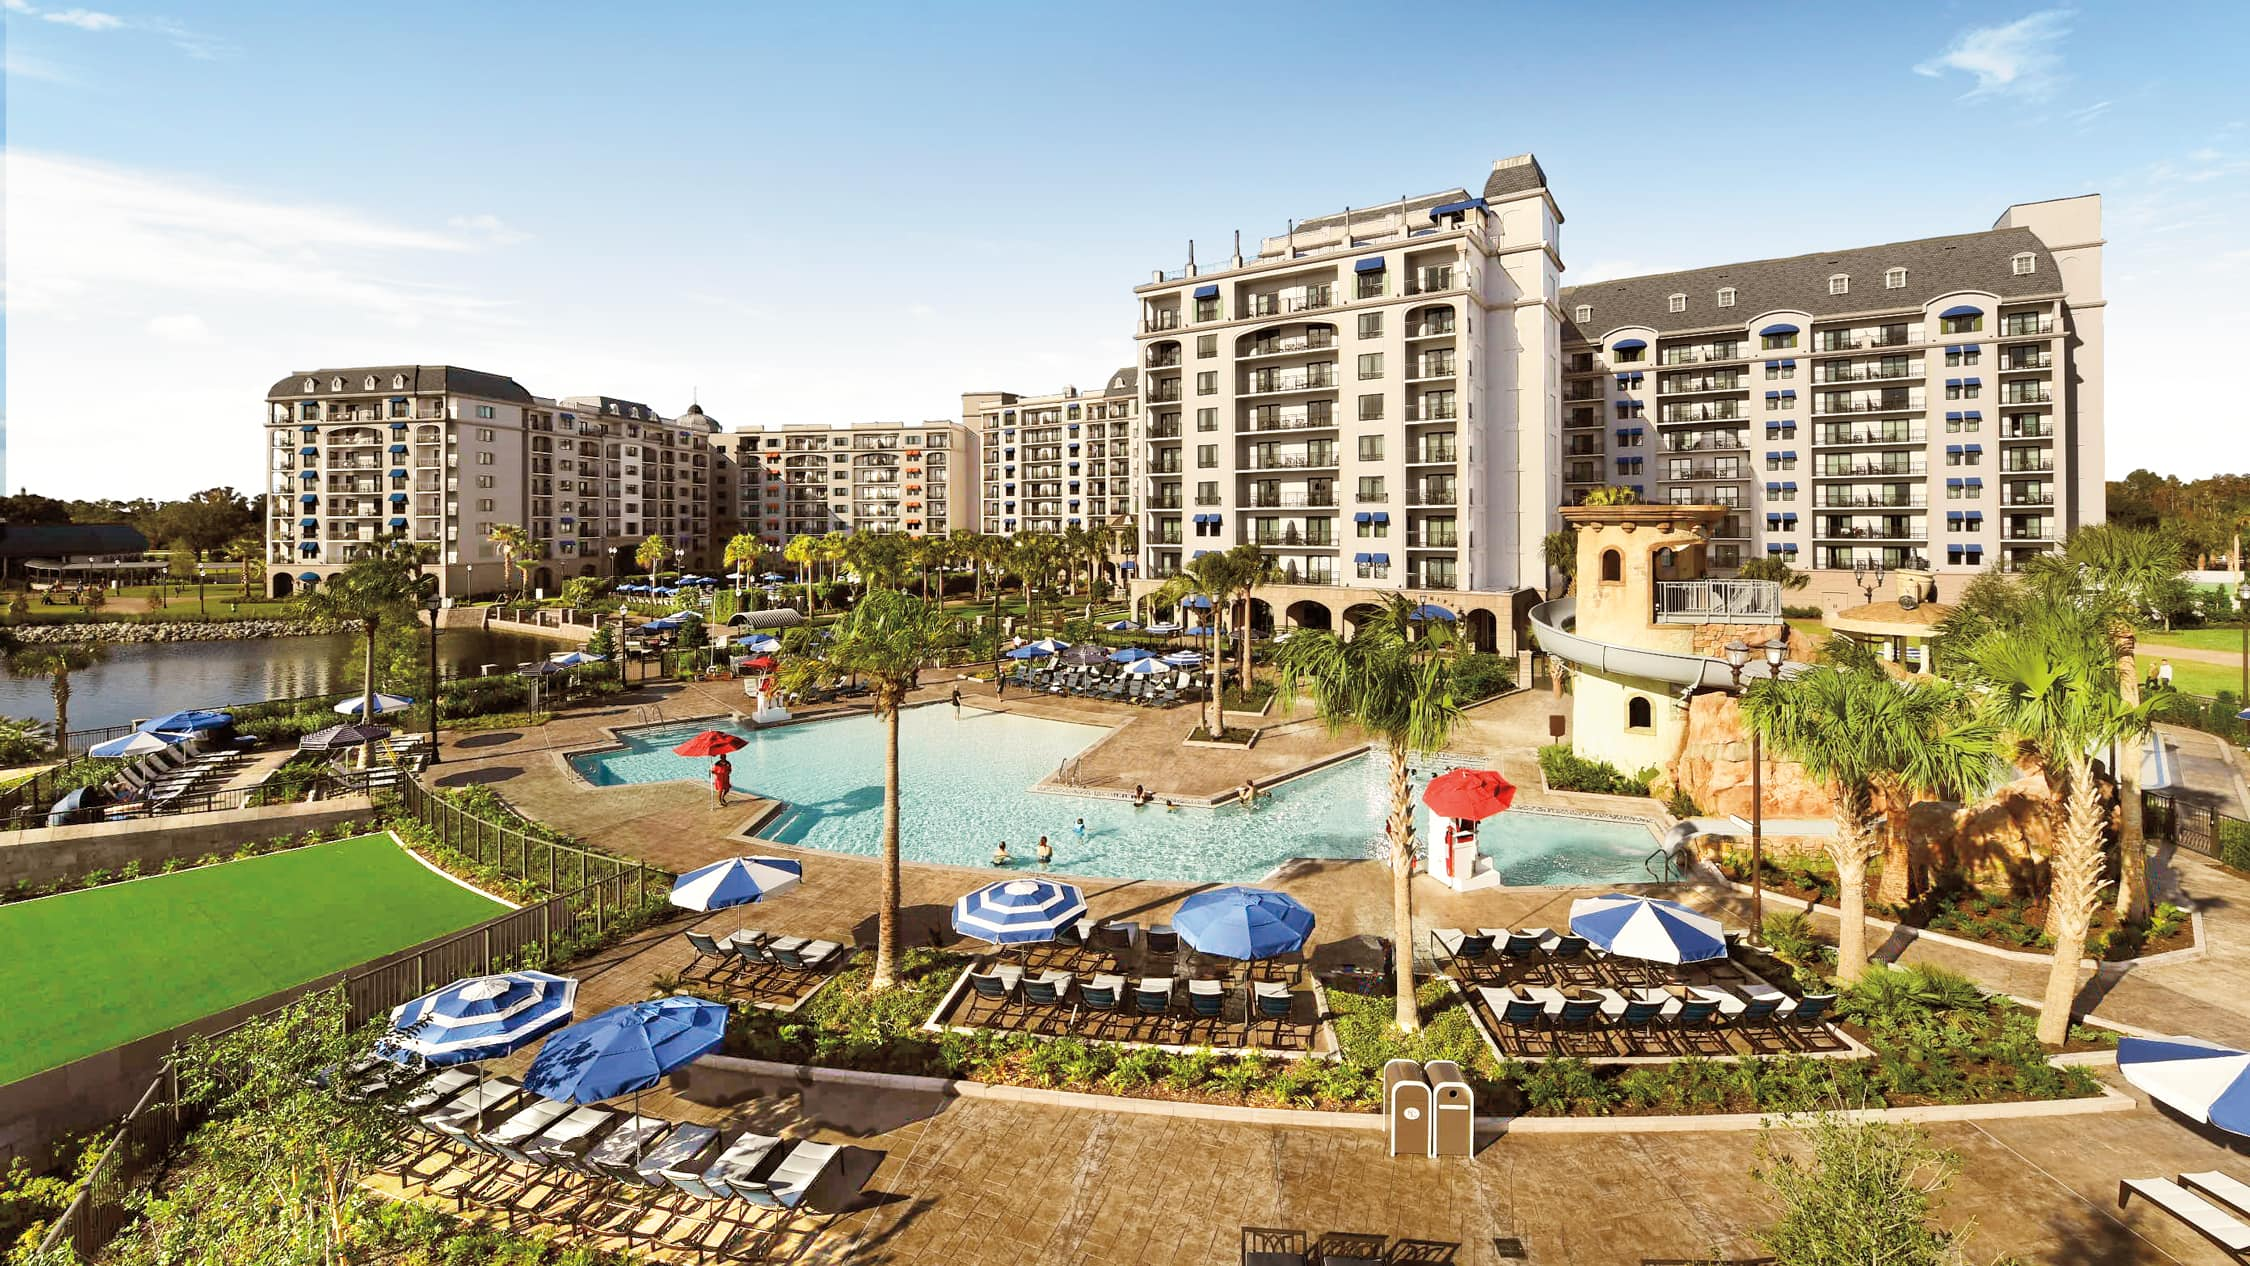 An outdoor pool with a waterslide, surrounded by lounge chairs, umbrellas and palm trees at Disney's Riviera Resort